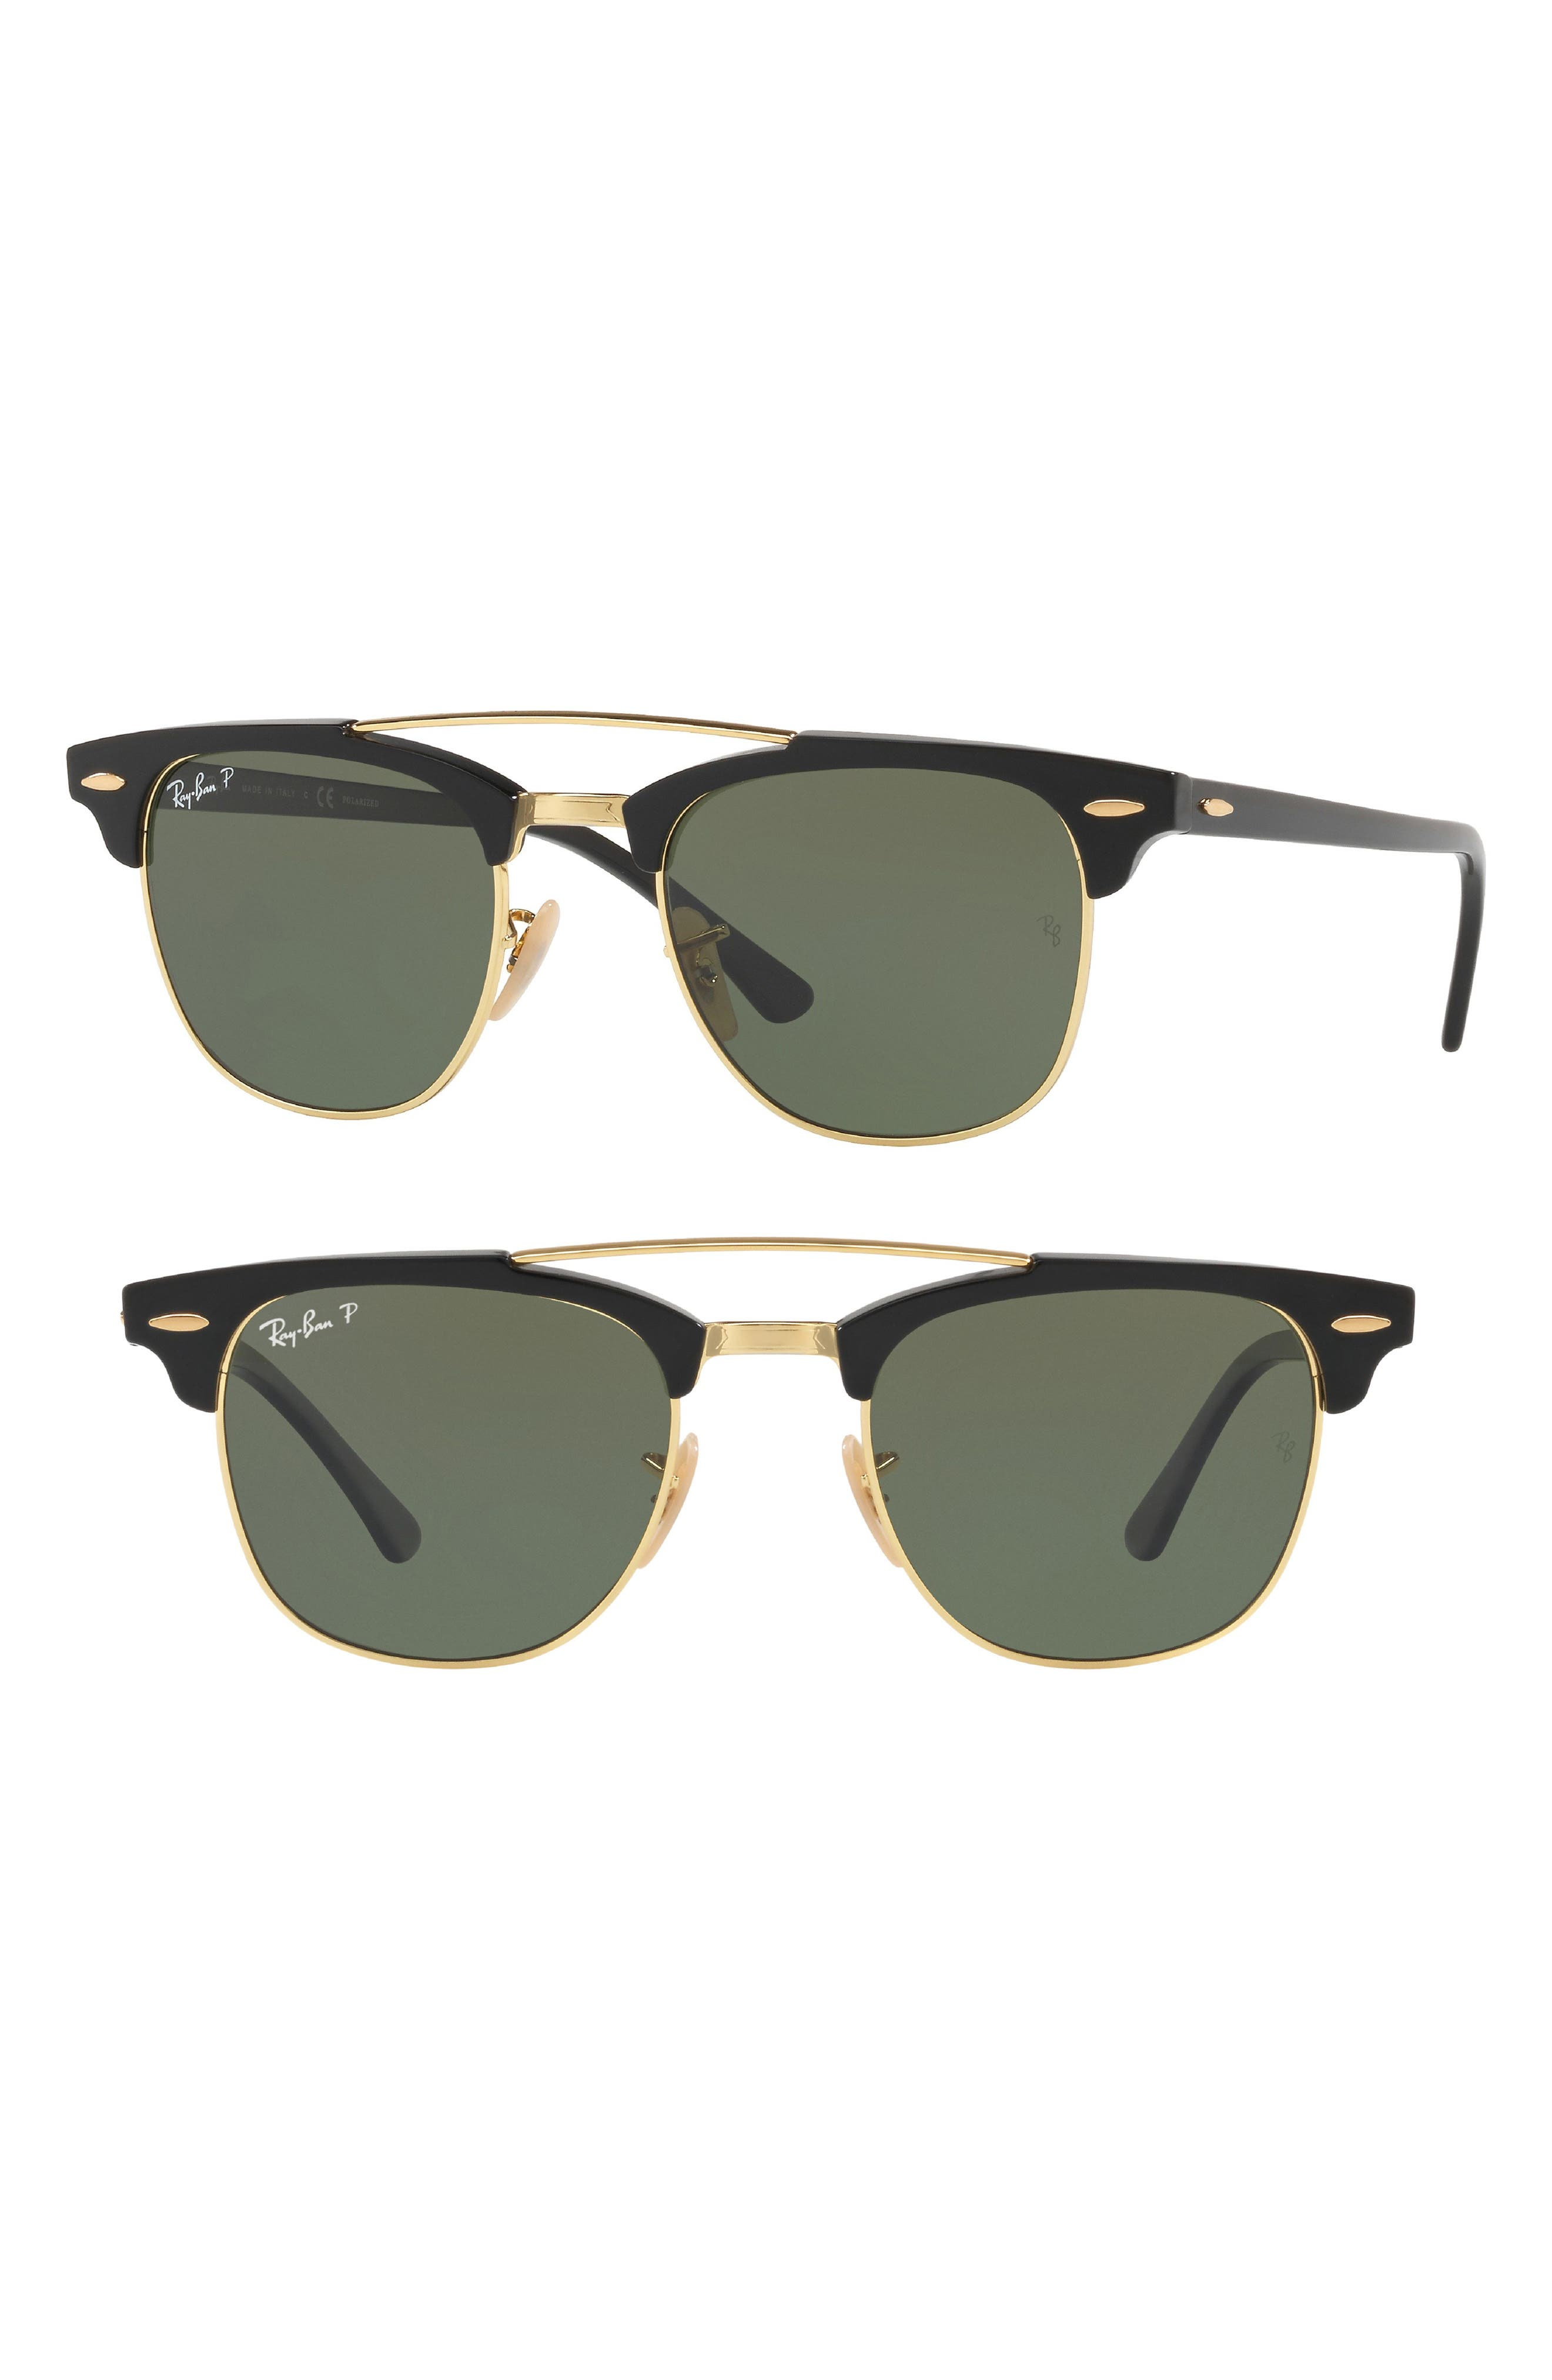 51mm Gradient Mirrored Sunglasses,                         Main,                         color, 001